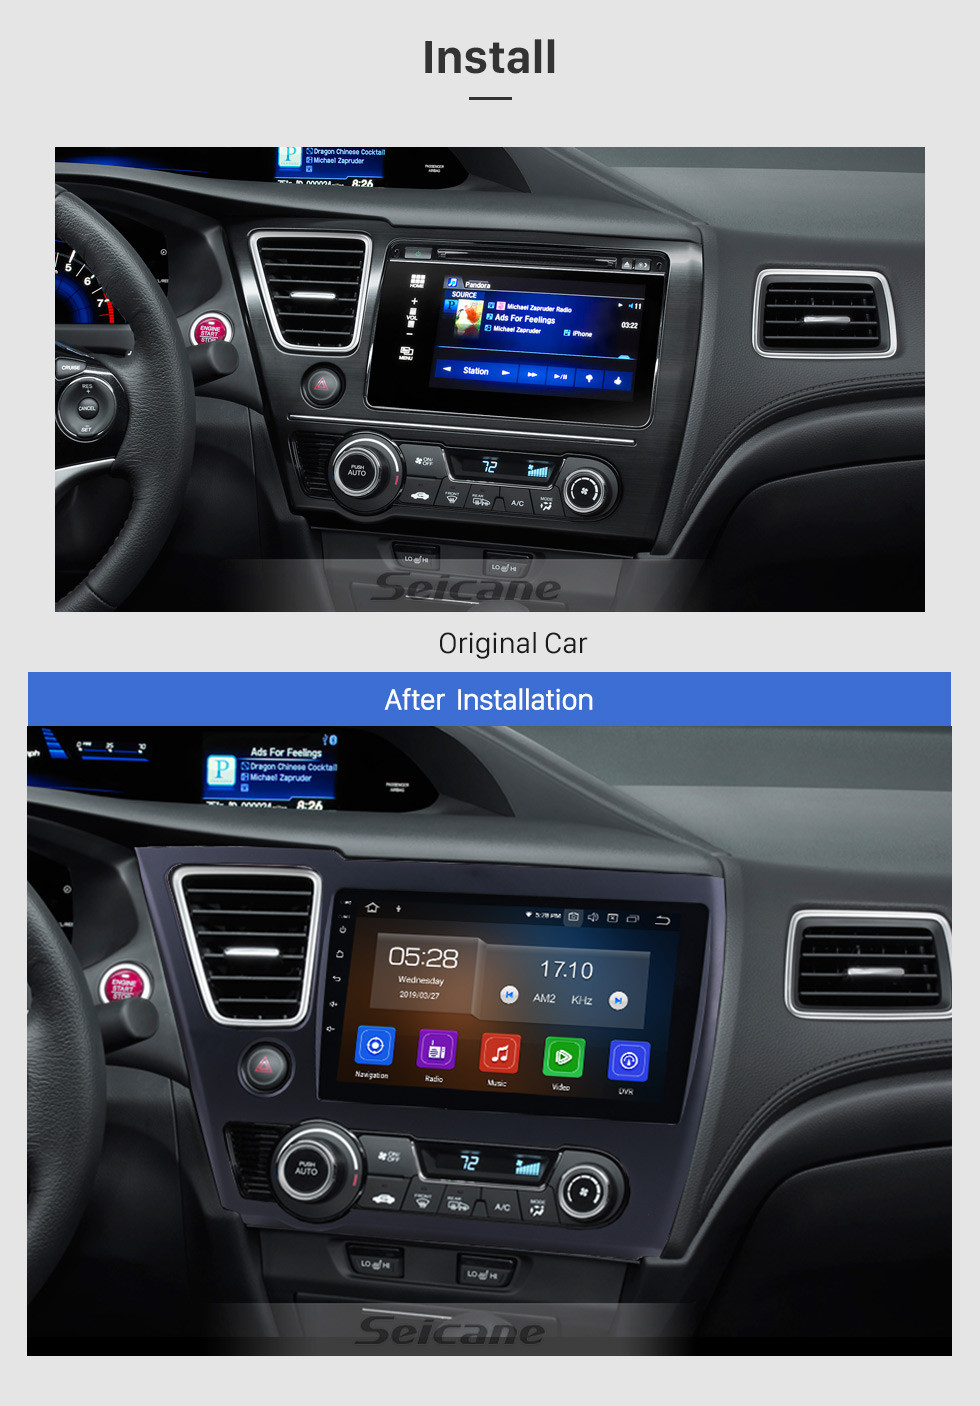 Seicane For 2014 2015 2016 2017 Honda Civic Android 10.0 HD Touchscreen 9 inch car stereo GPS Navigation Radio Bluetooth Mirror link OBD DVR Rear view camera TV USB Carplay